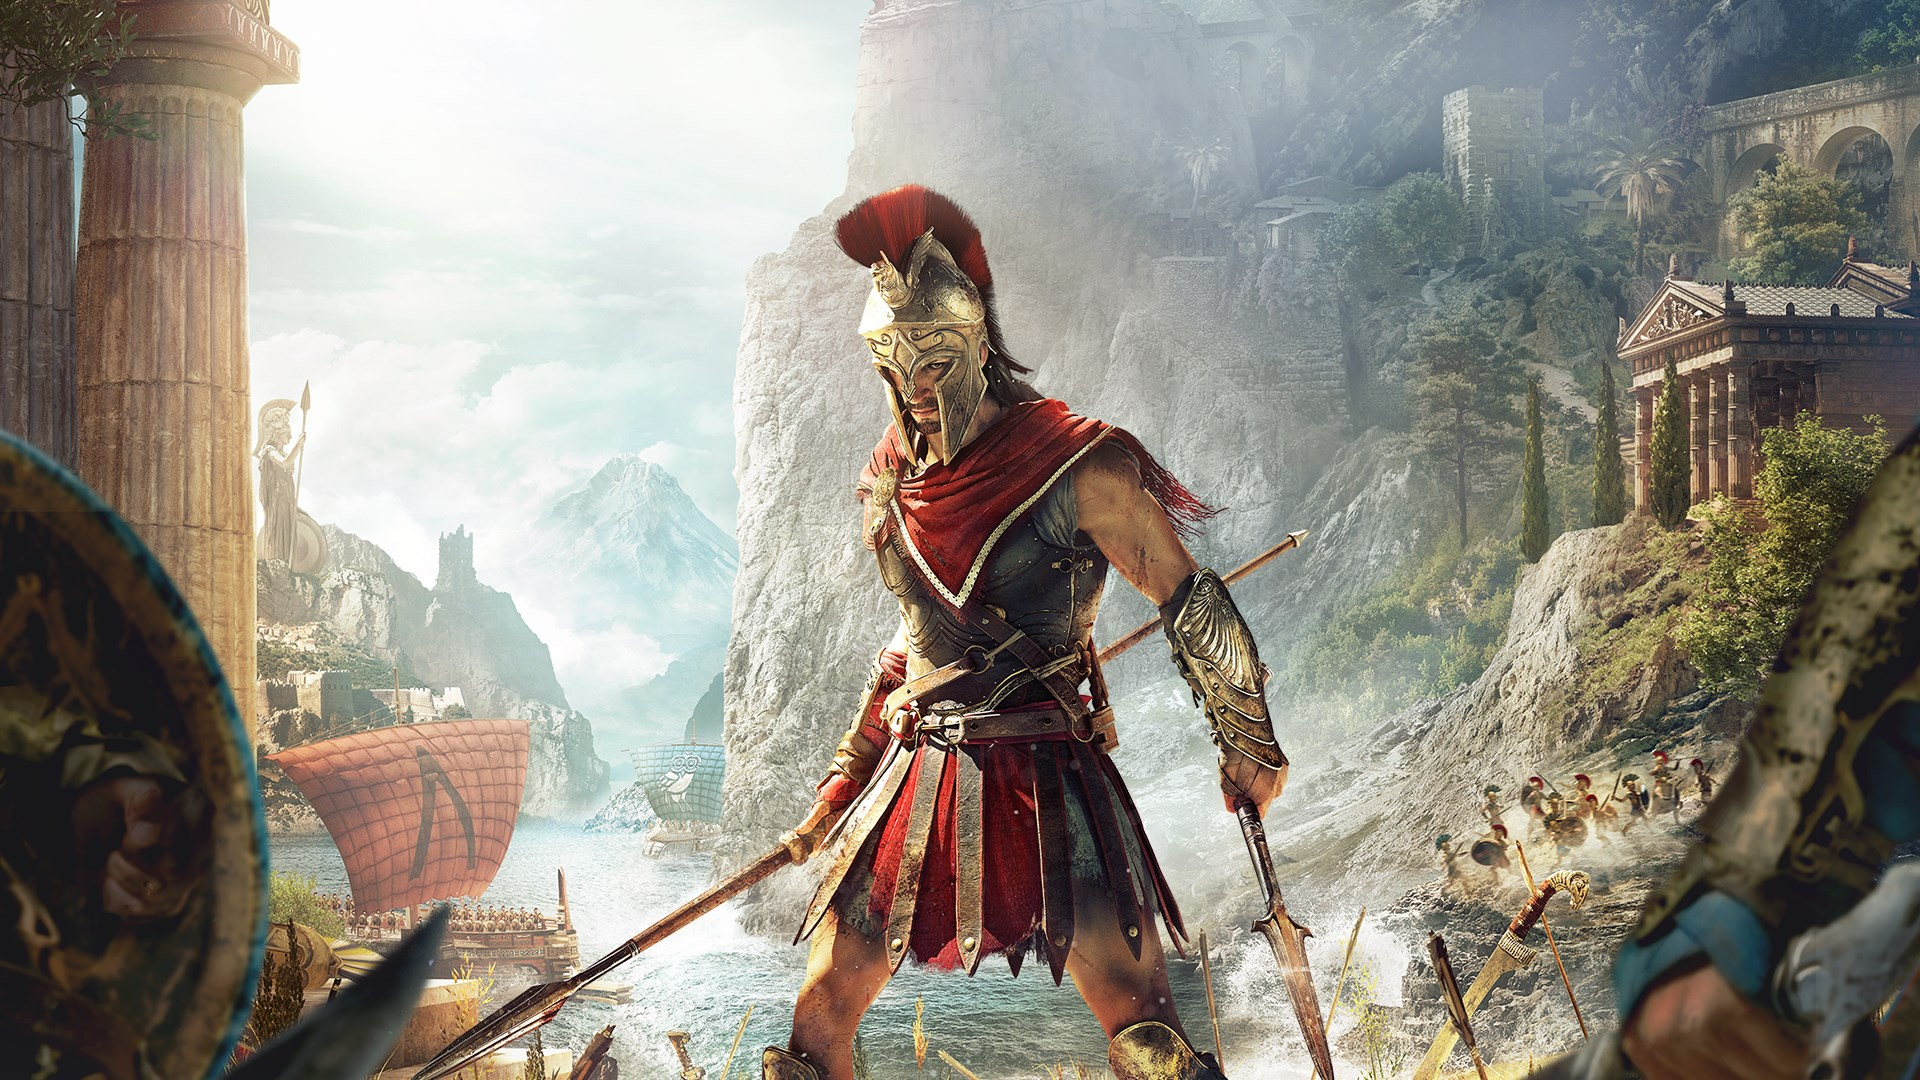 Assassin S Creed Odyssey Director Talks How The Team Pulled Off Making The Game Relevant For Nearly A Year